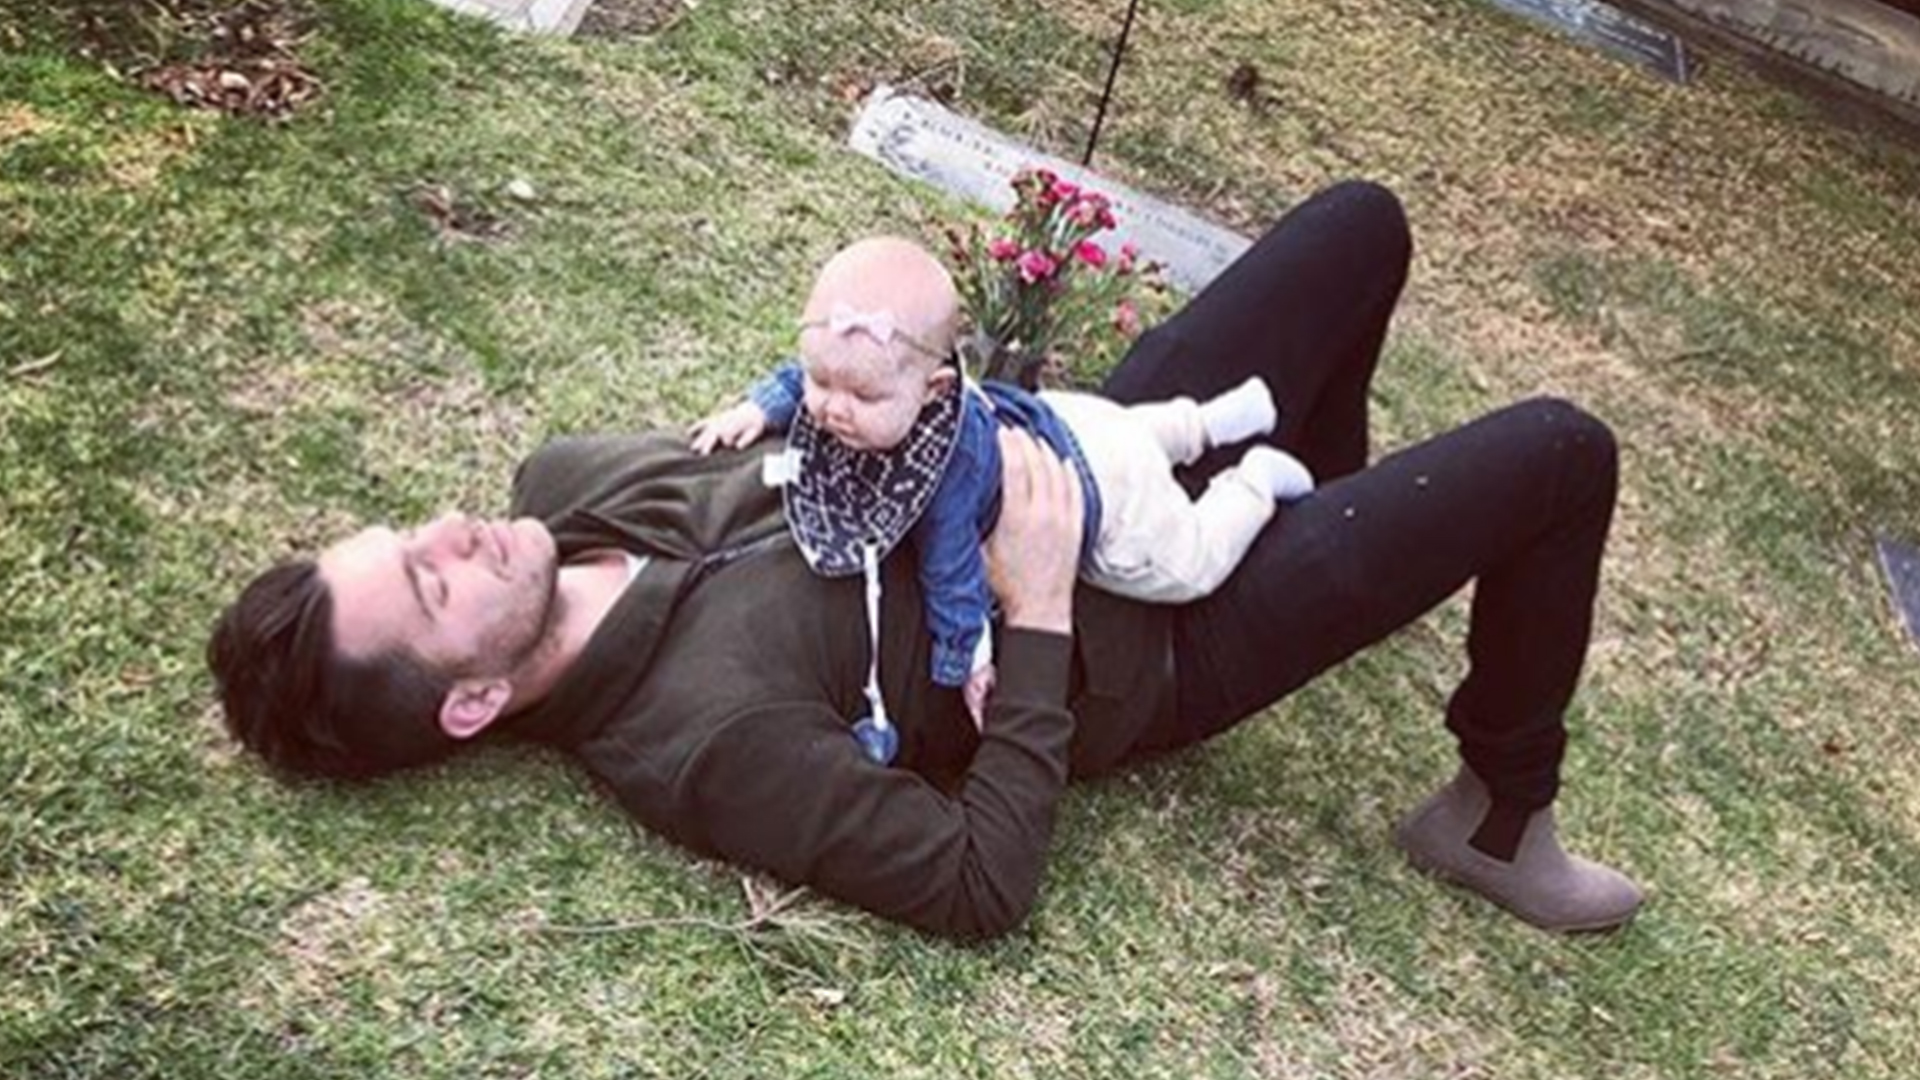 Andy Grammer takes daughter to his mother's grave for 'extra